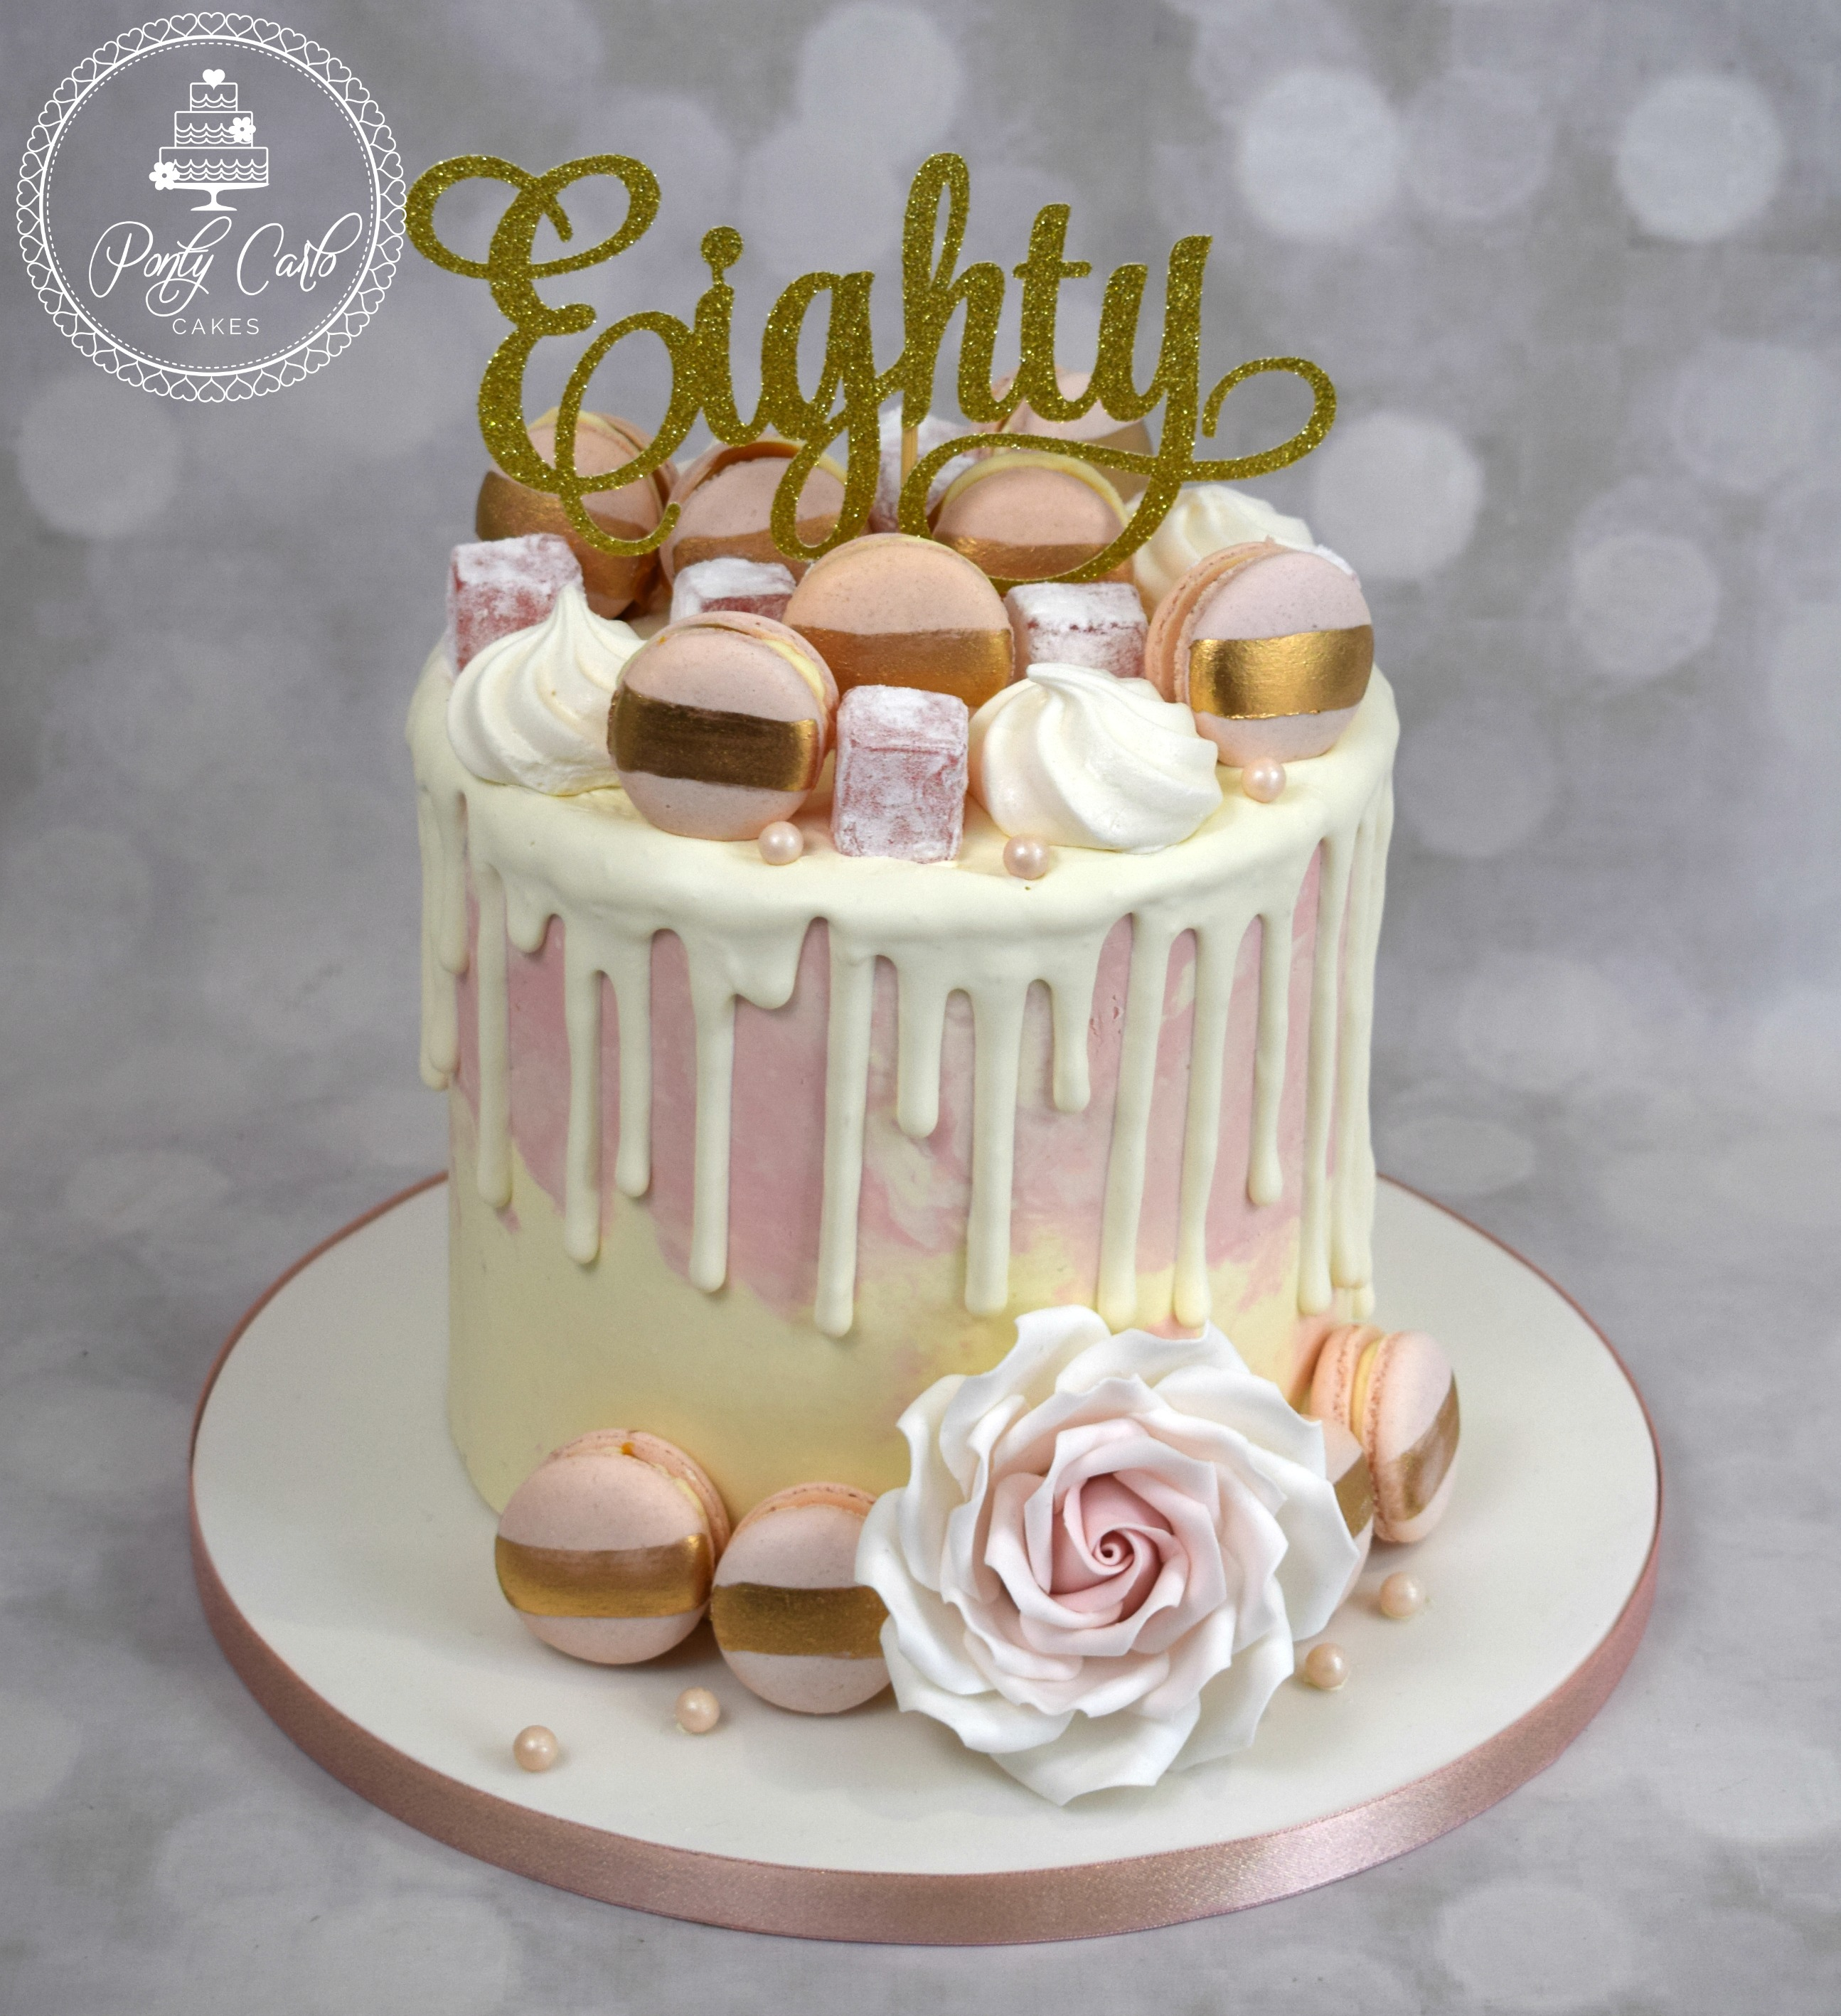 Chocolate Drip Birthday Cake With Handmade Gold Brushed Macarons And Turkish Delight